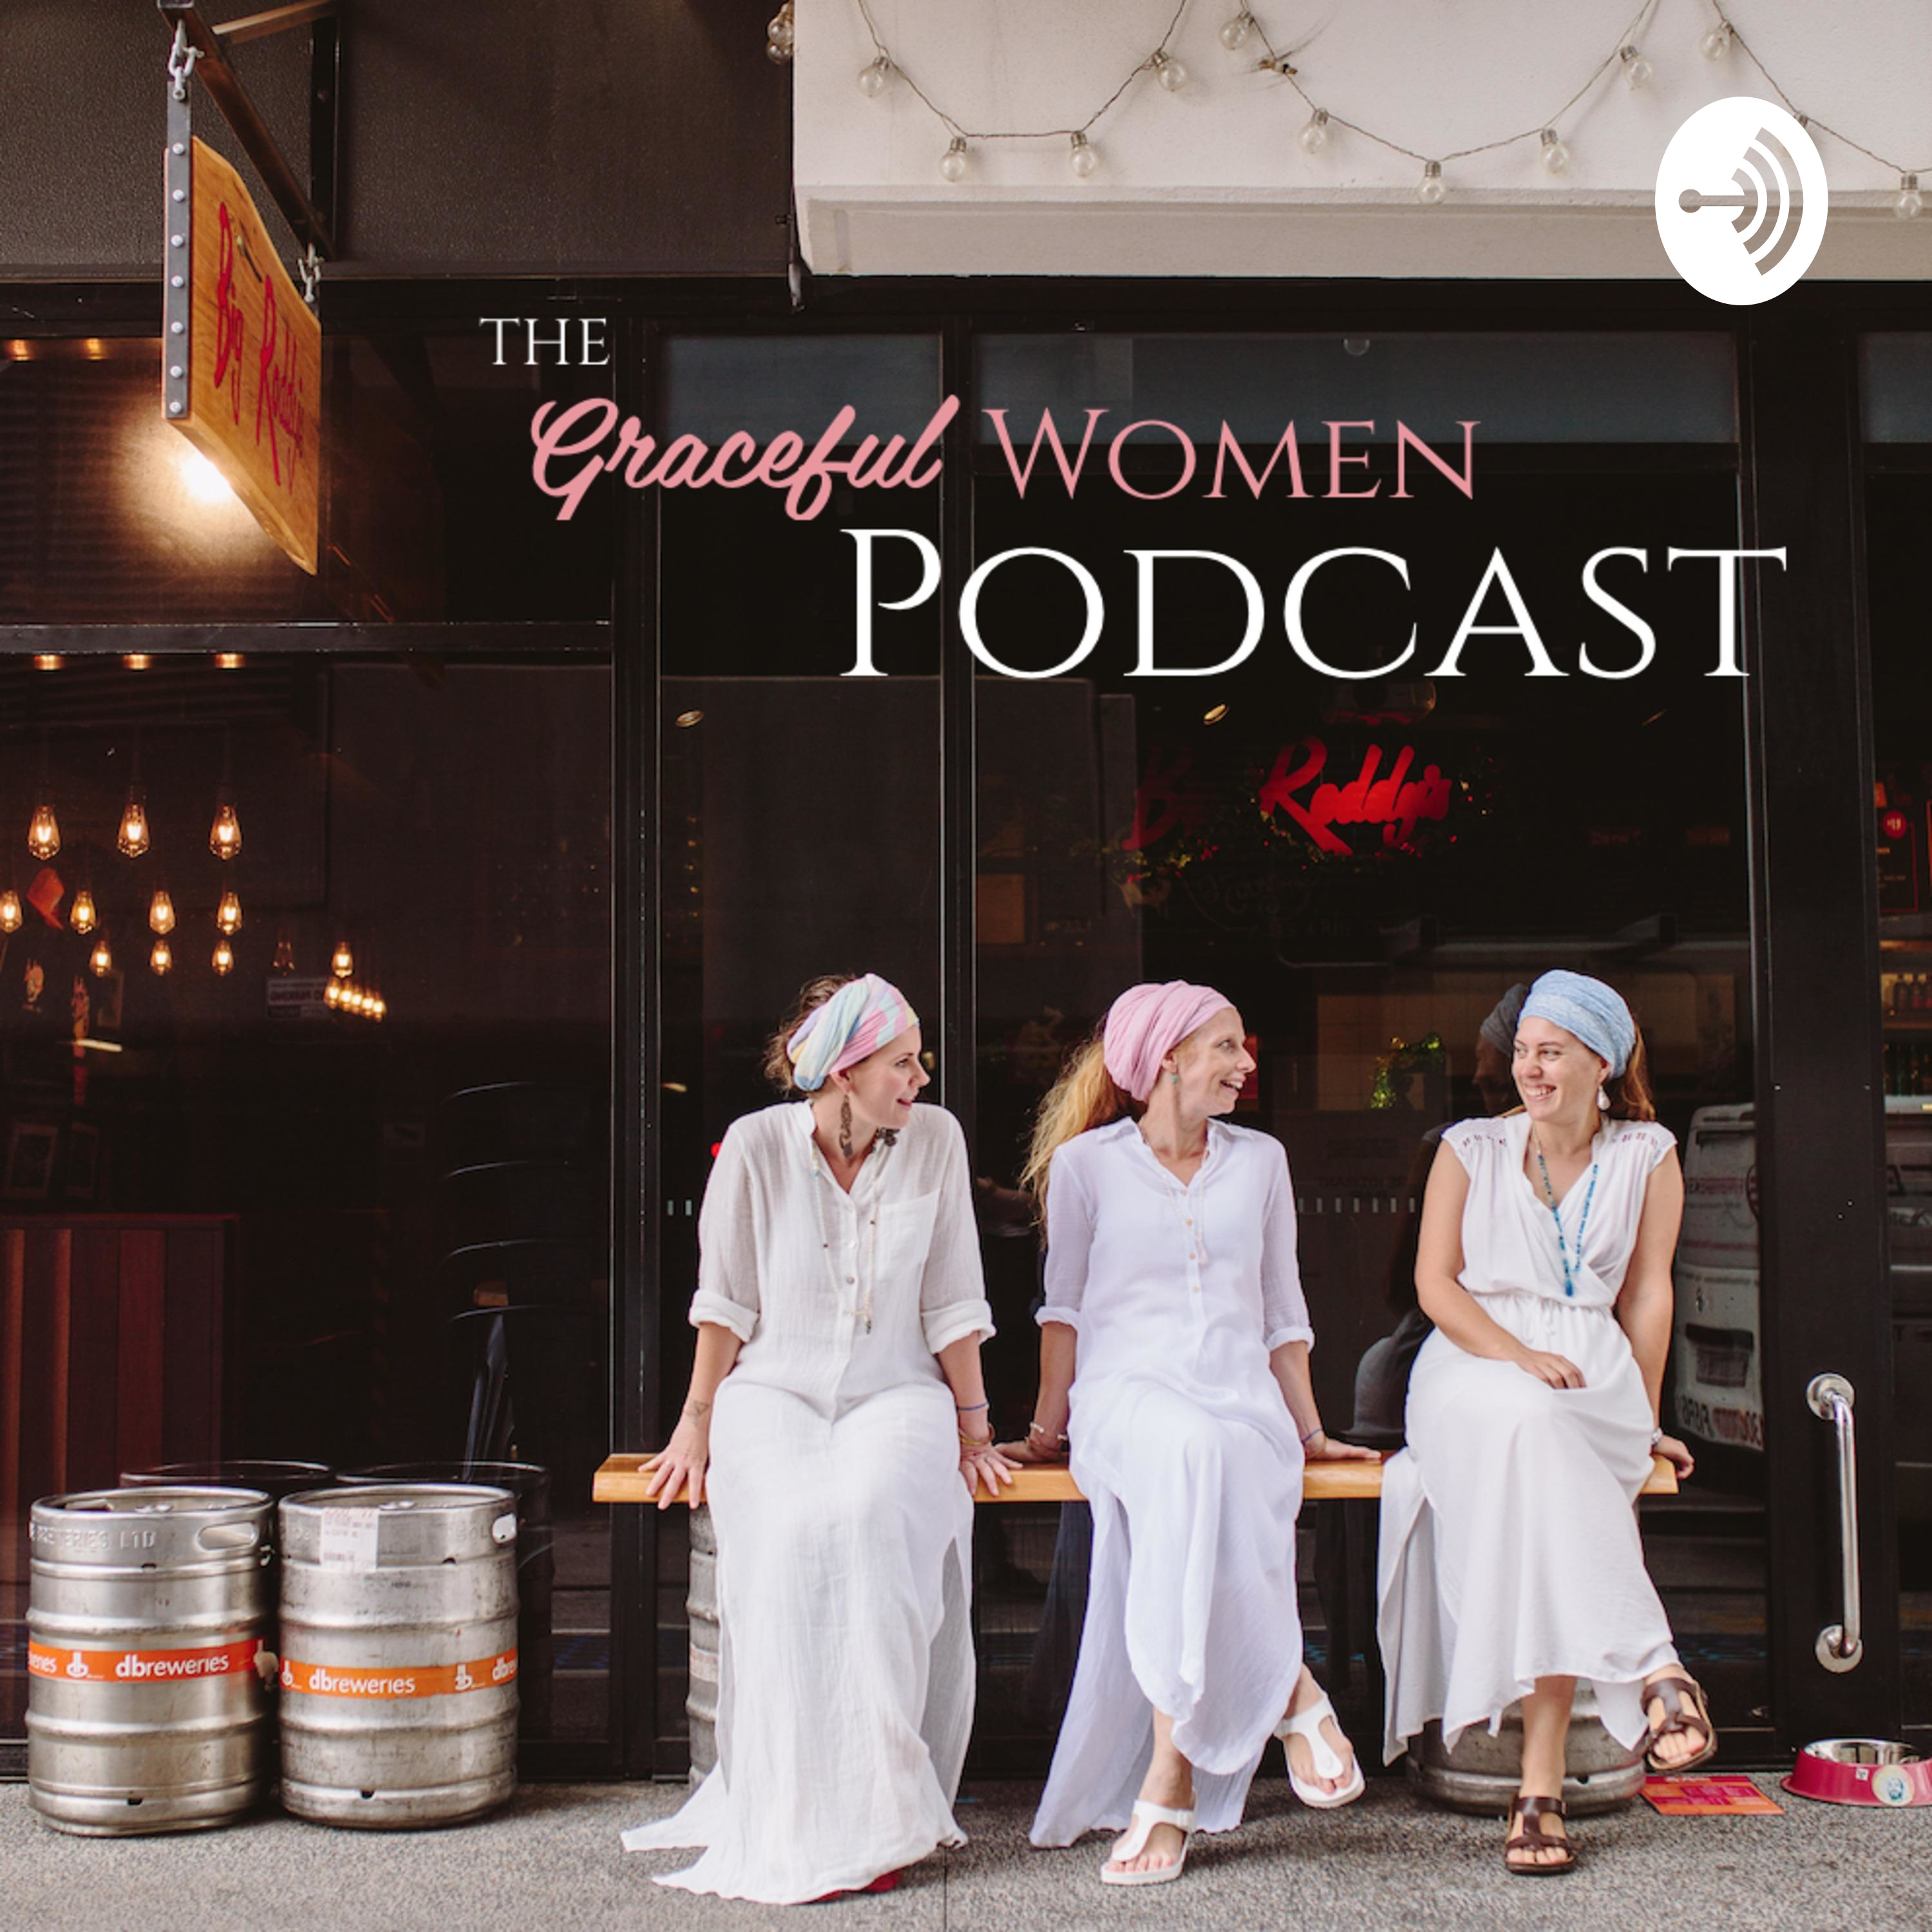 The Graceful Women Podcast